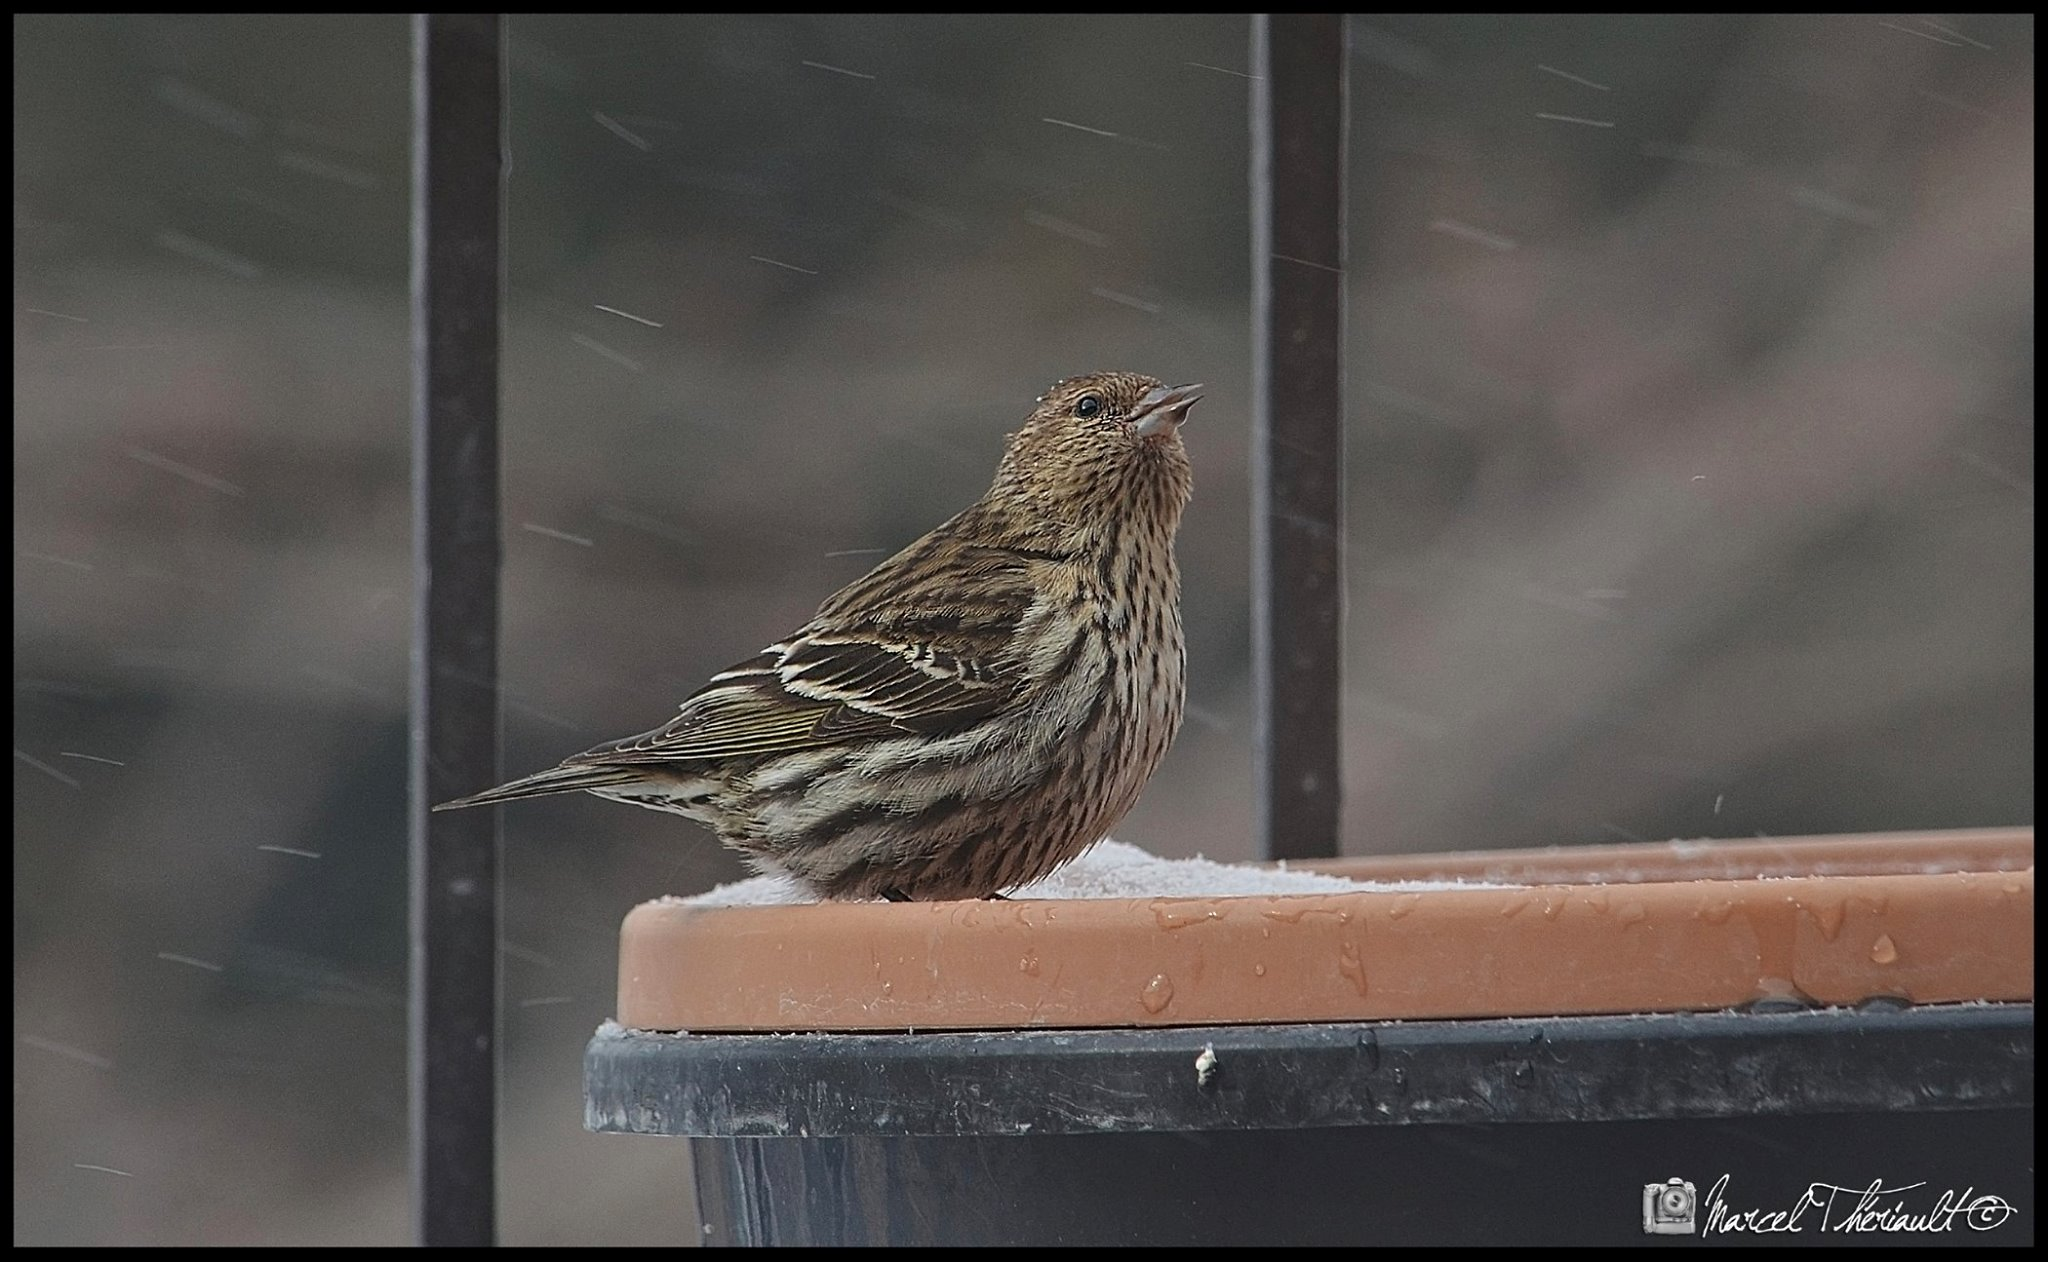 Pine Siskin on My Balcony by Marcel Theriault‎